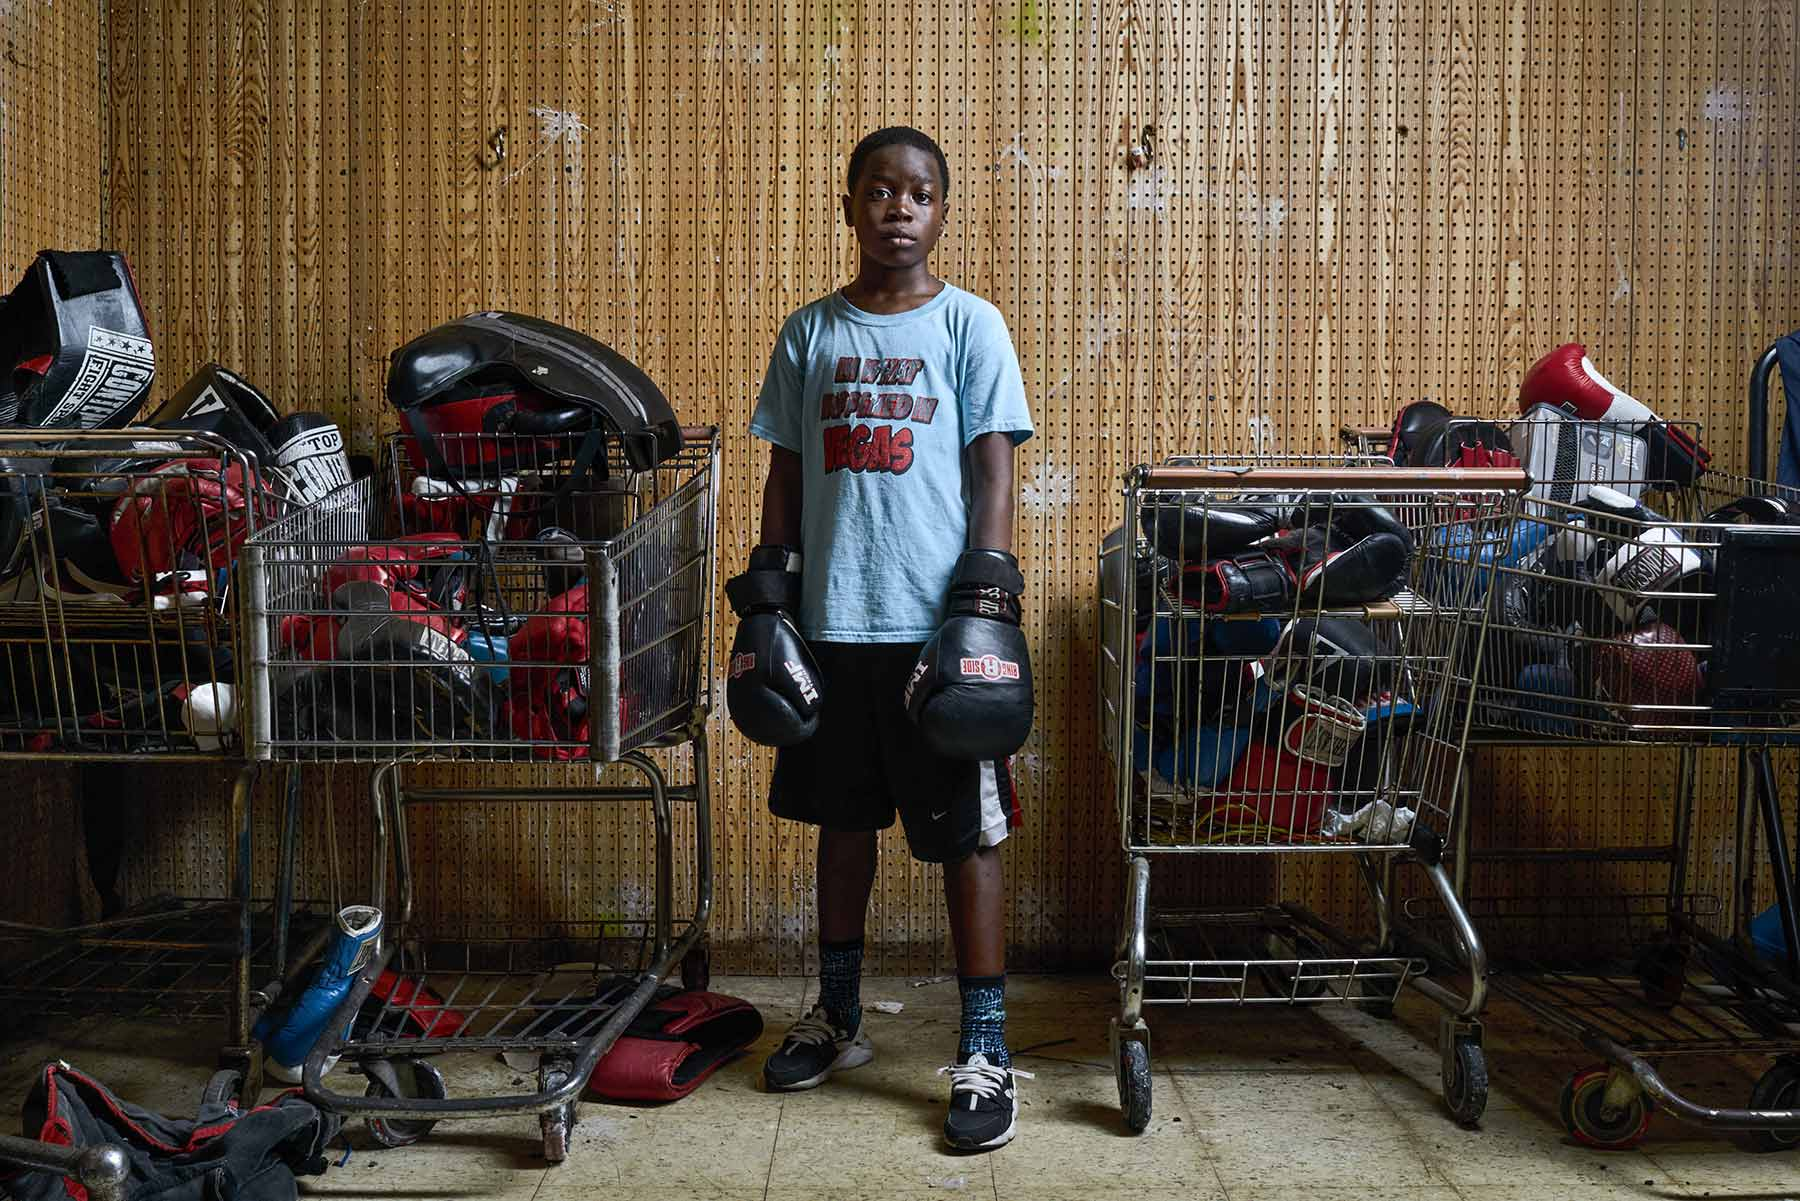 A-portrait-of-a-young-boy-wearing-boxing-gloves-standing-between-four-grocery-carts-full-of-sports-gear